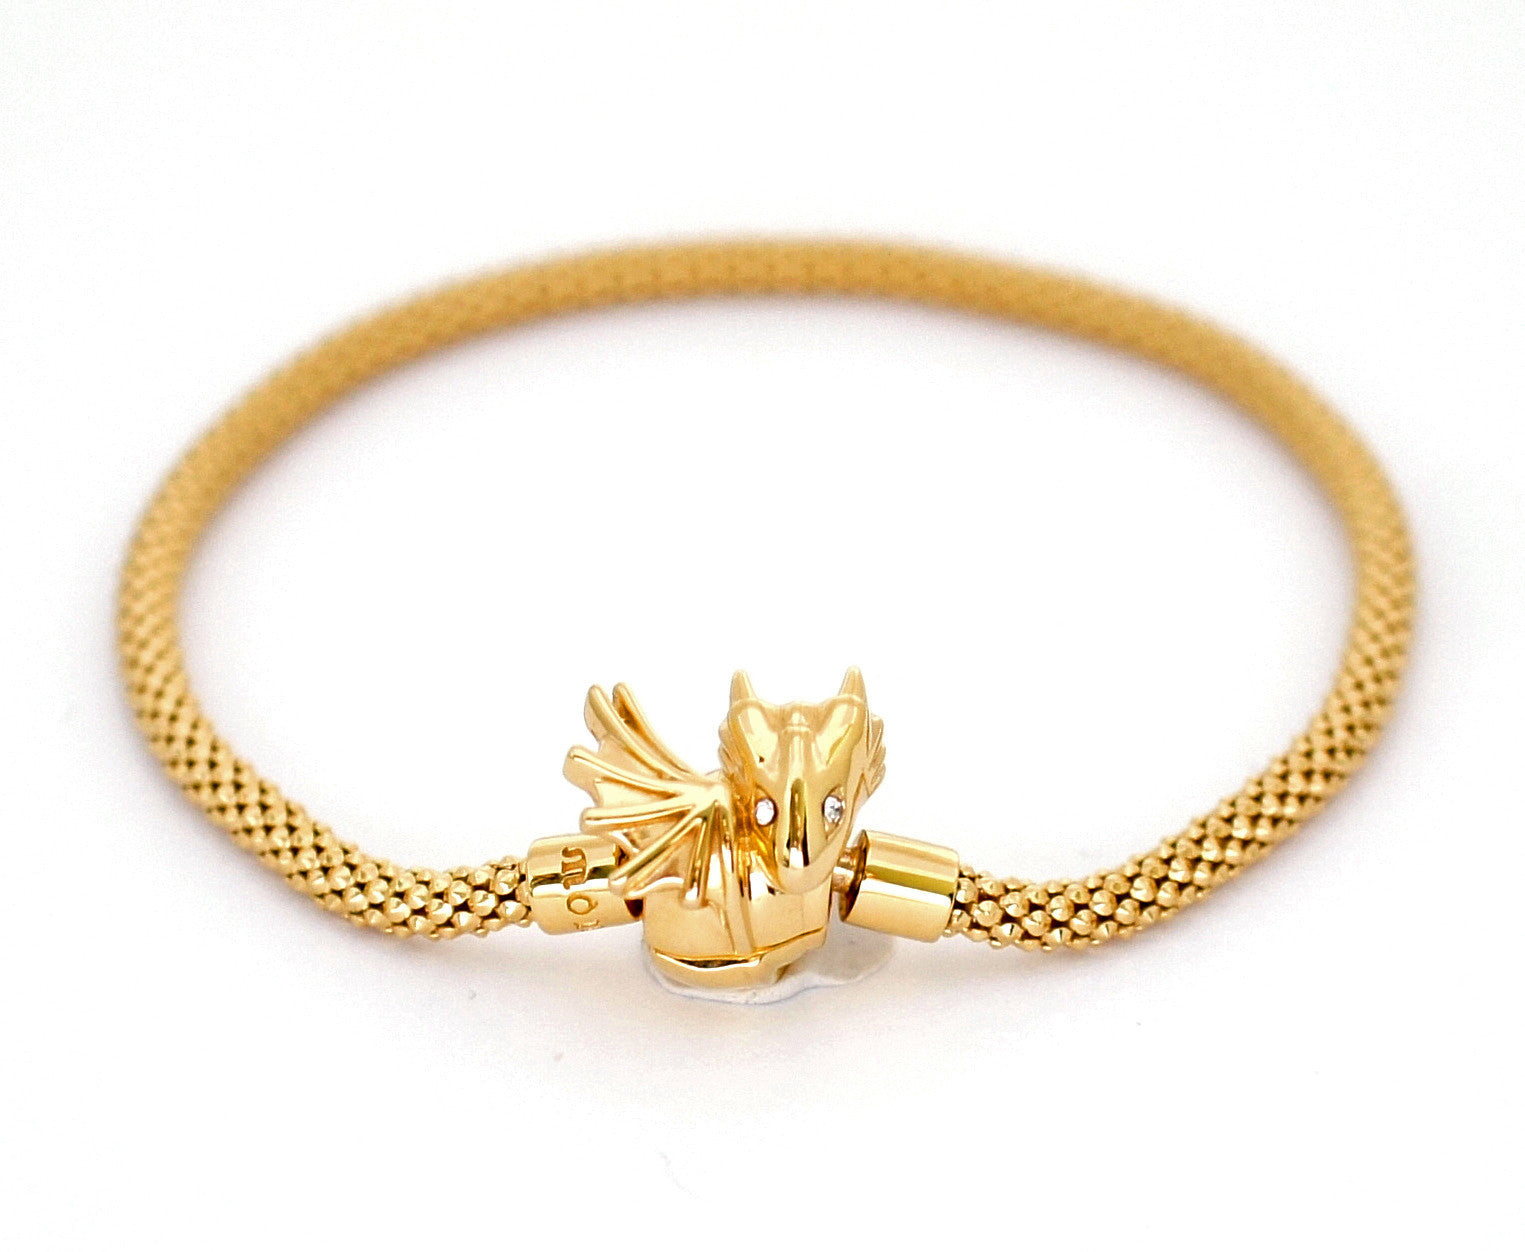 Baby Gold Dragon Bracelet by Monvatoo - Art Jewellery Store: Song of Jewellery